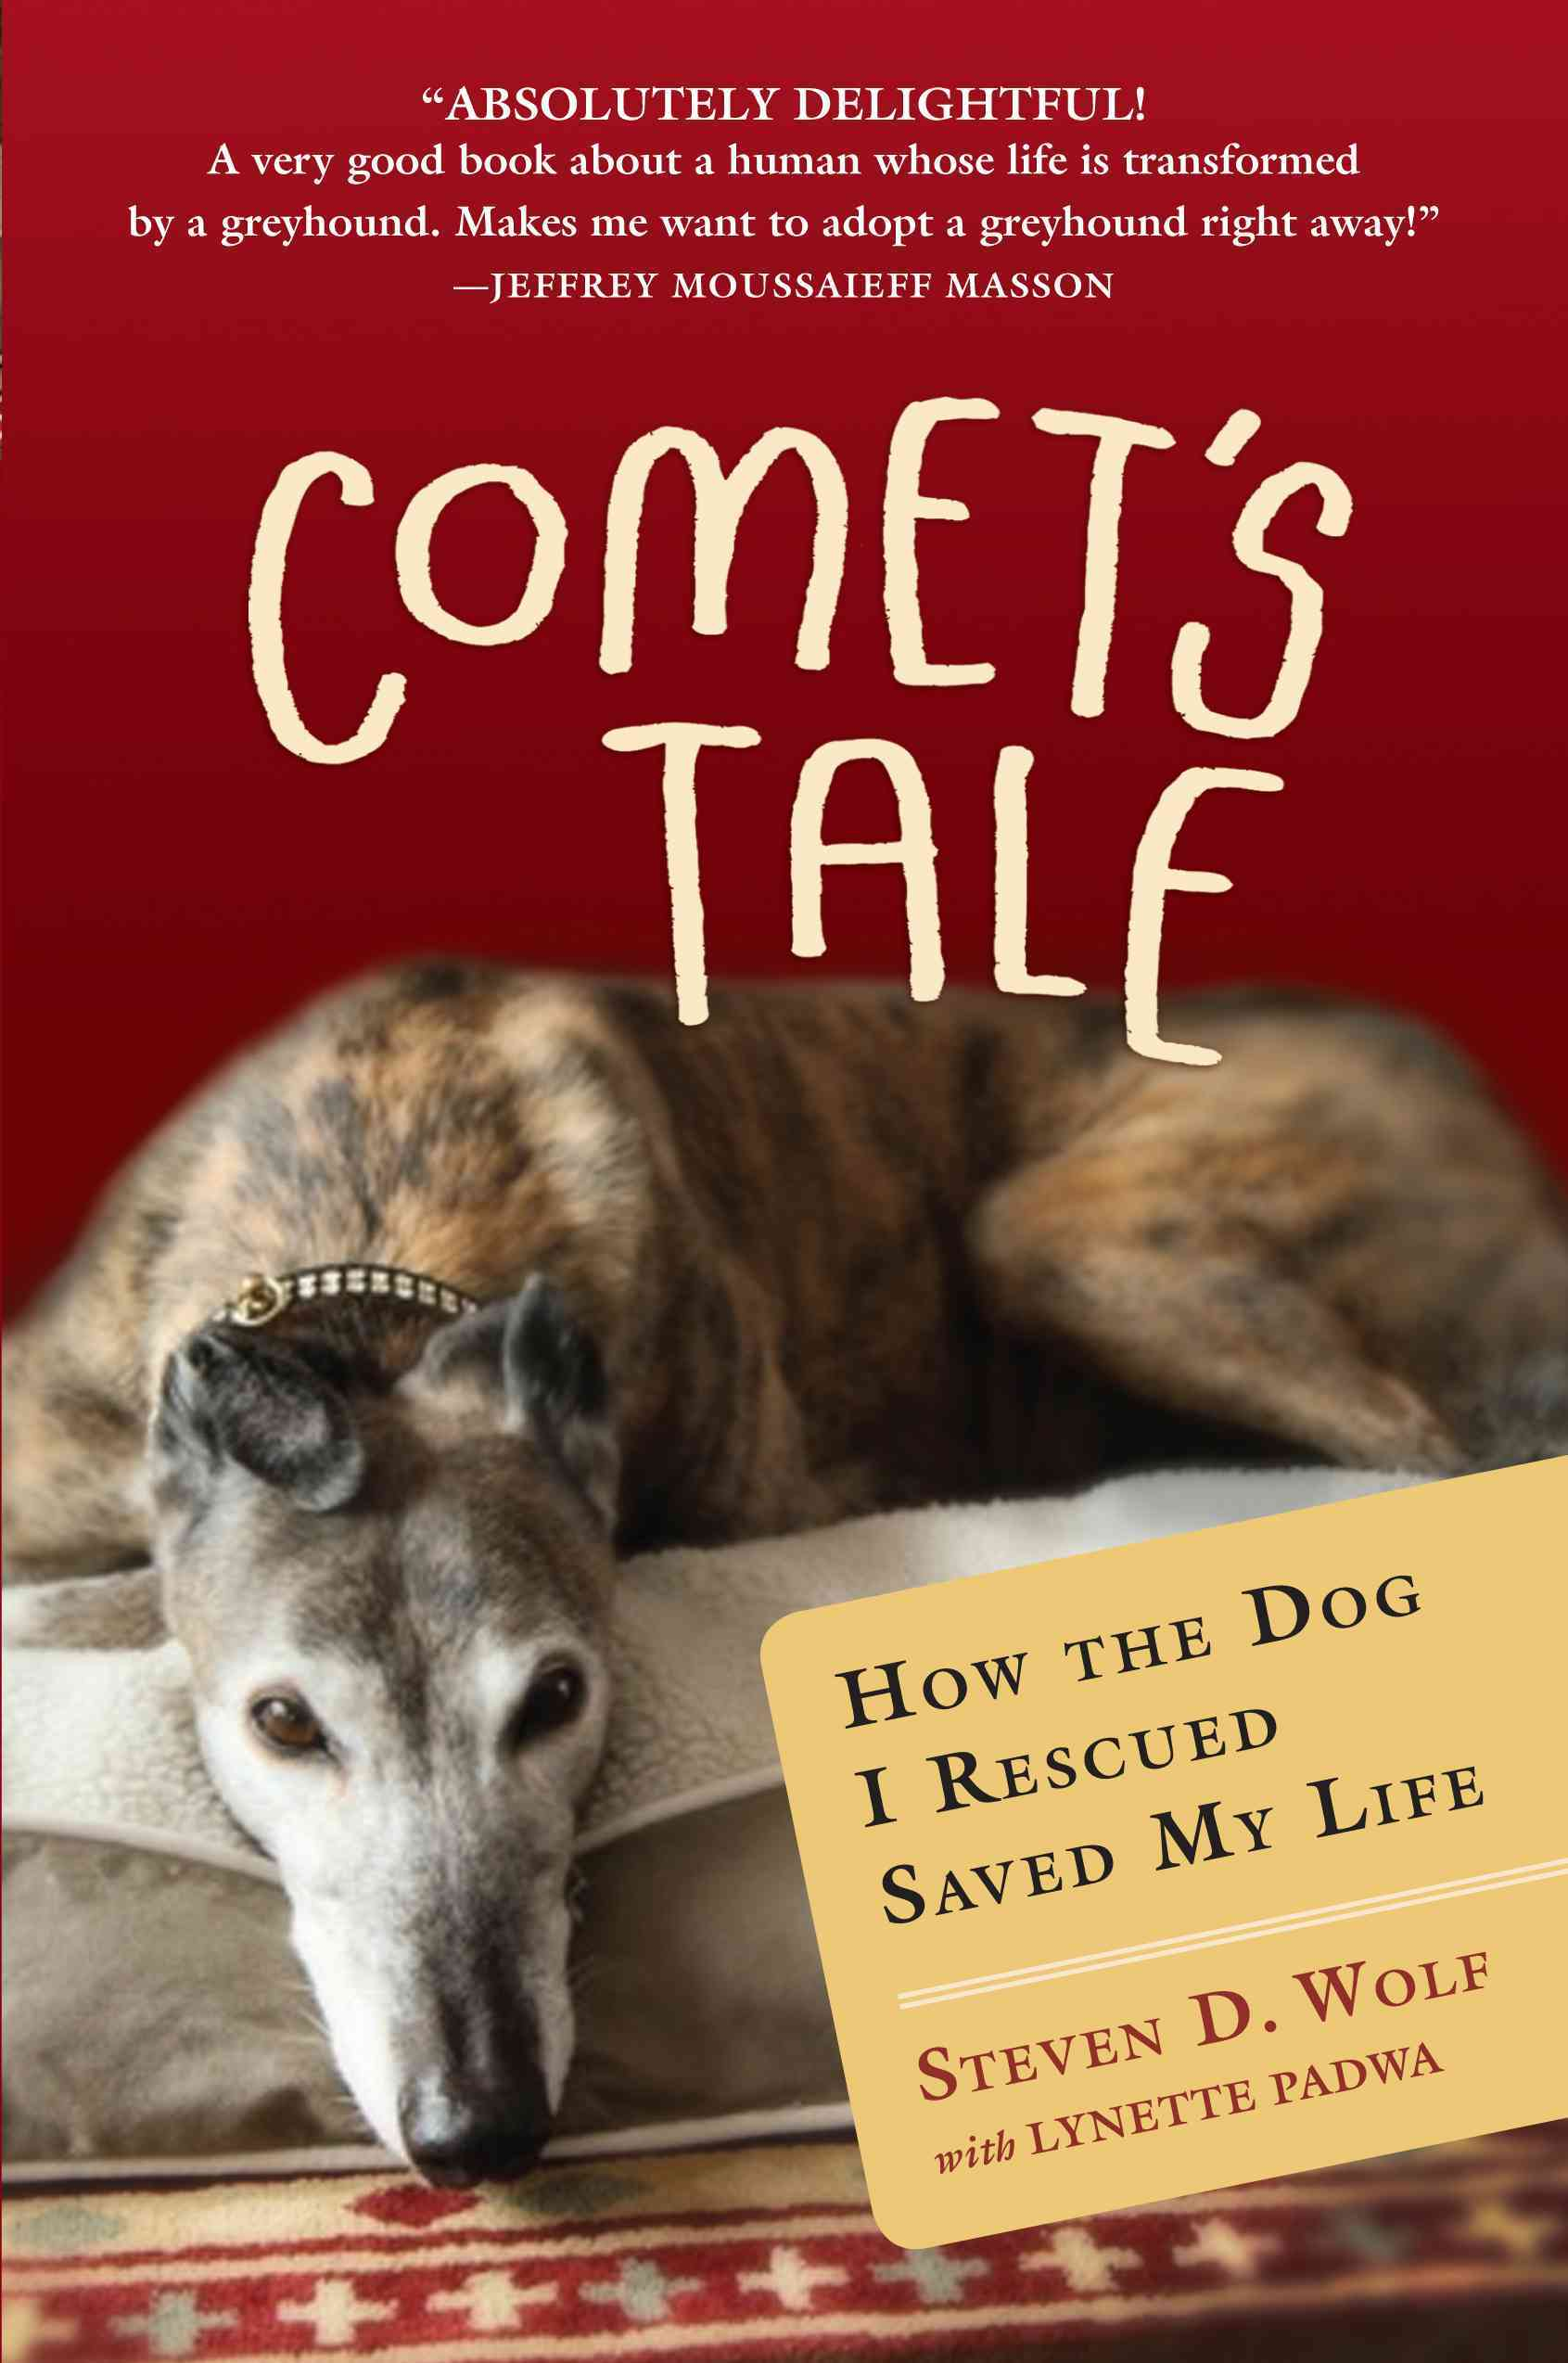 Comet's Tale: How the Dog I Rescued Saved My Life (Hardcover)